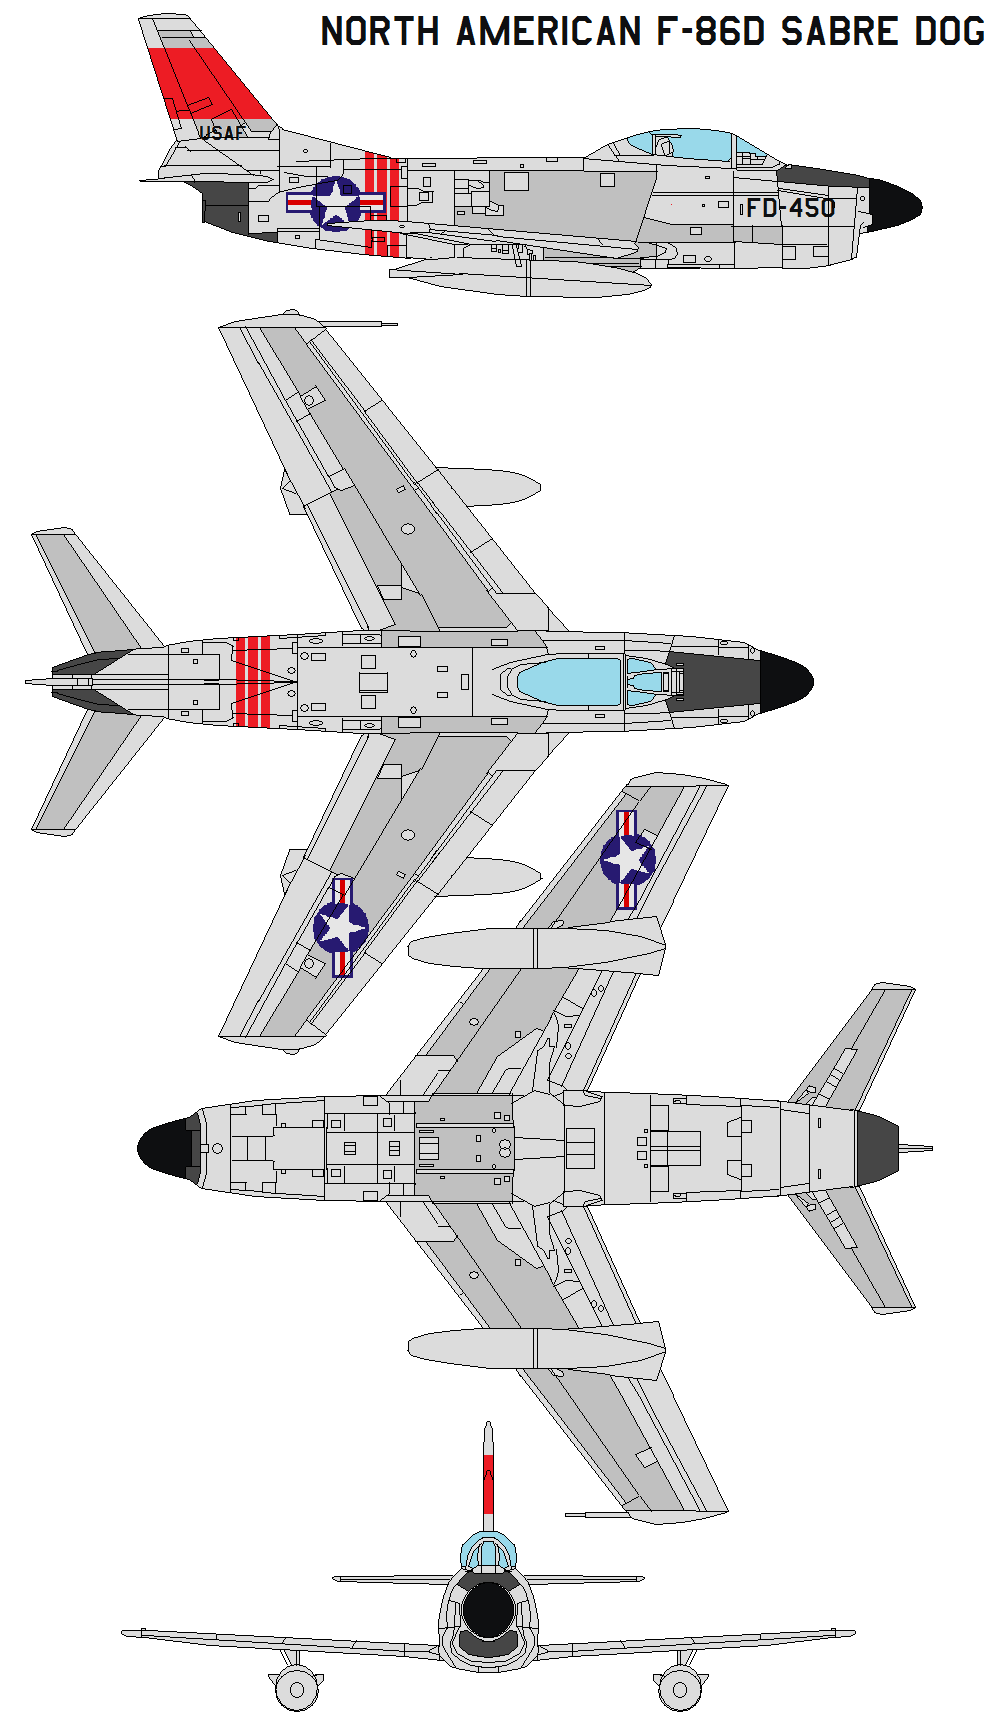 North American F 86d Sabre Dog By Bagera3005 On Deviantart